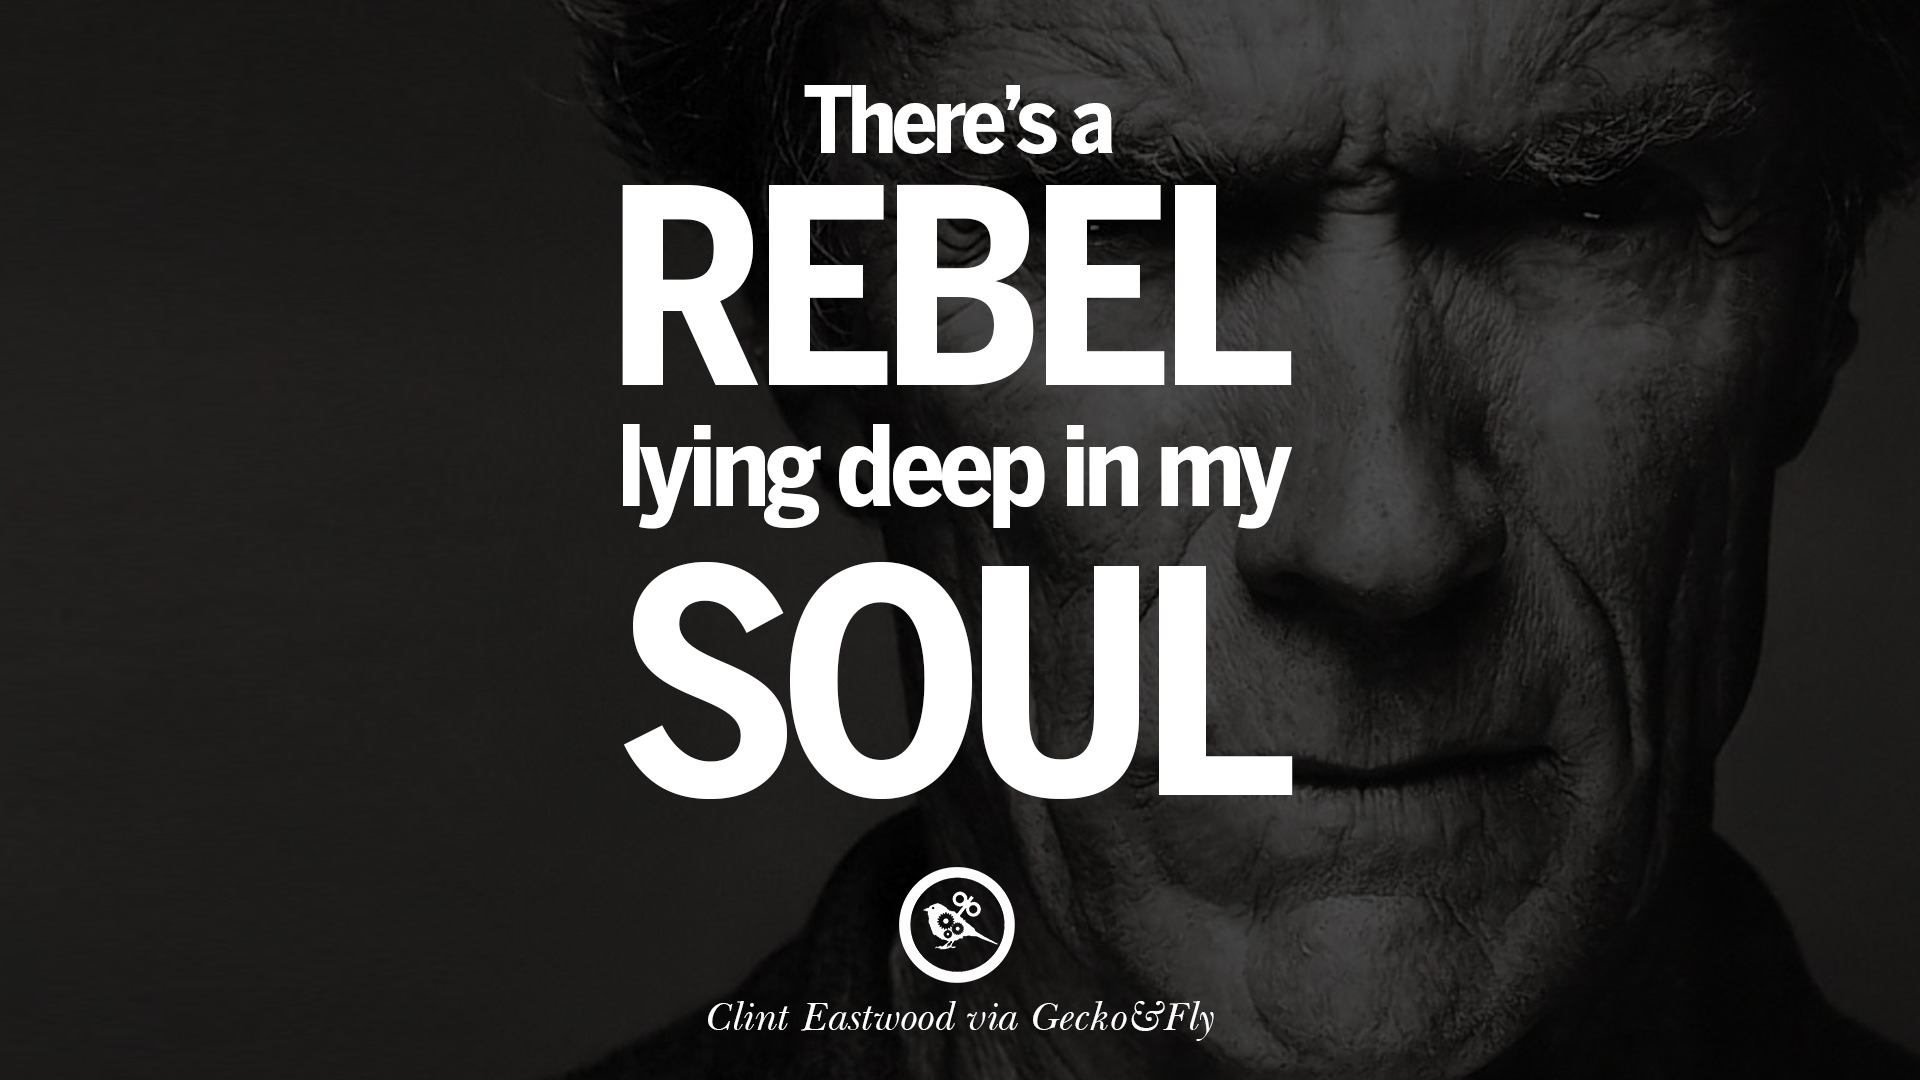 Quotes From Pinterest: 24 Inspiring Clint Eastwood Quotes On Politics, Life And Work